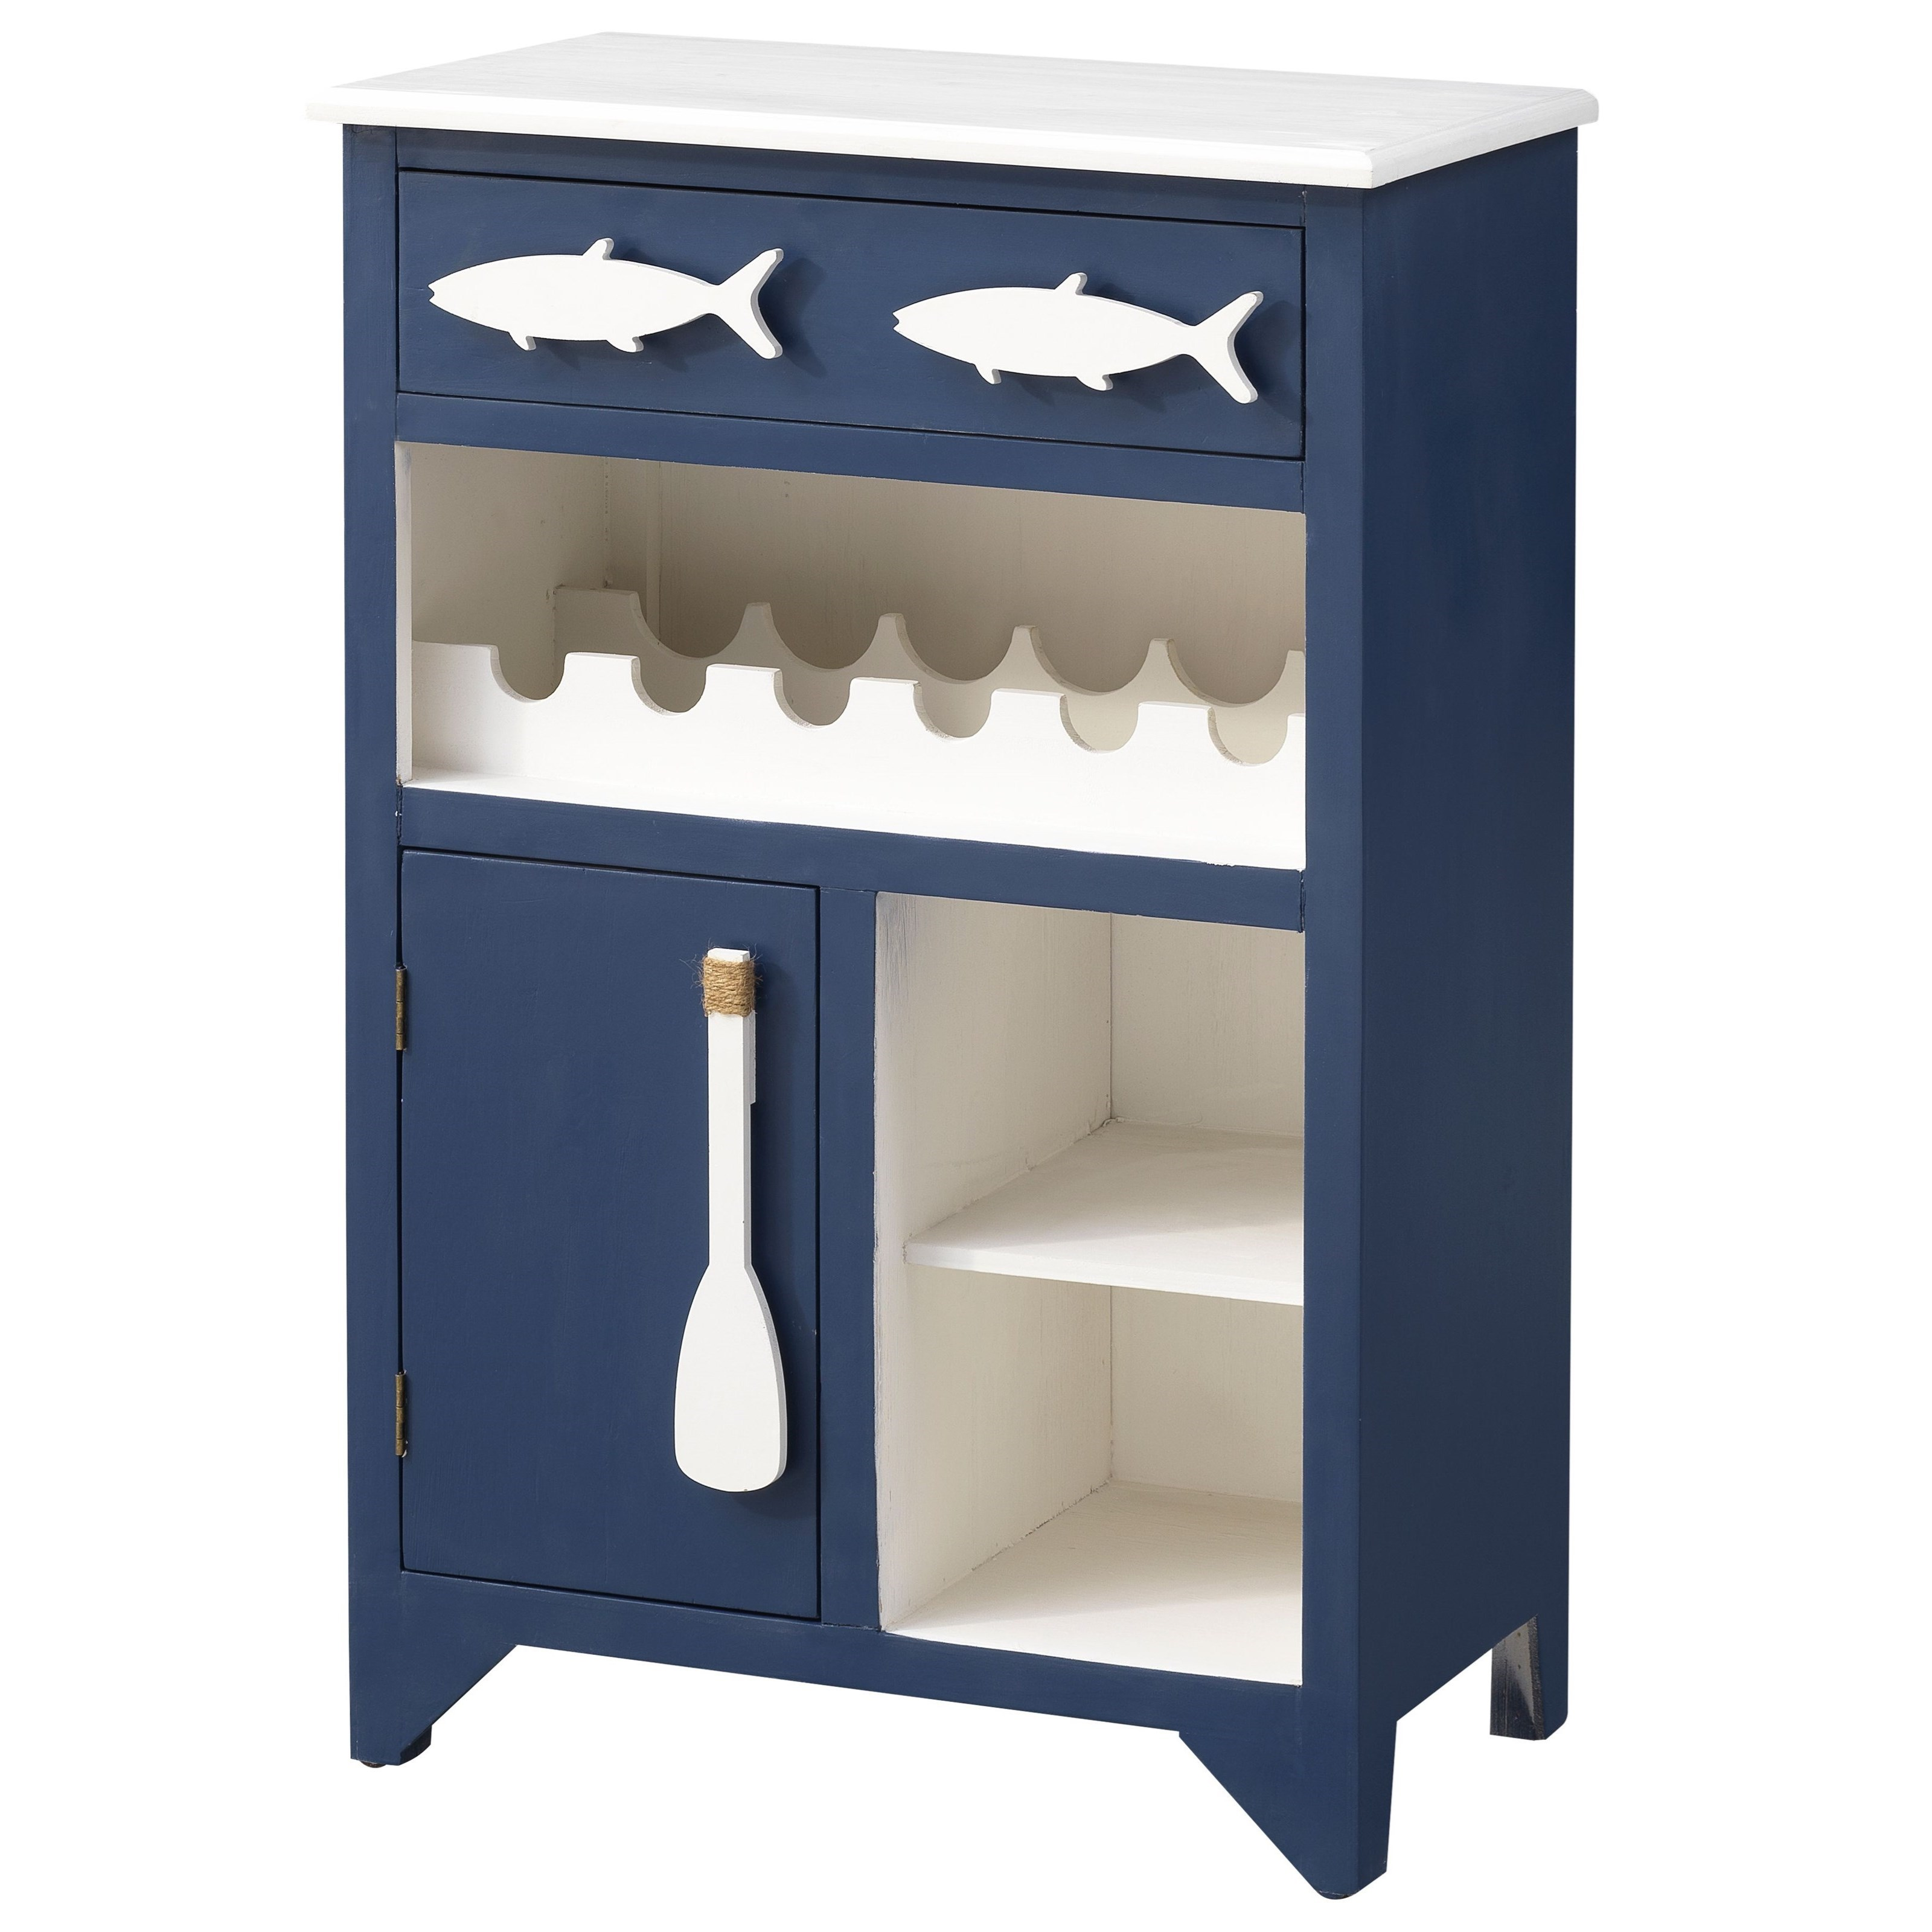 Pieces in Paradise 1-Drawer, 1-Door Wine Server by Coast to Coast Imports at Zak's Home